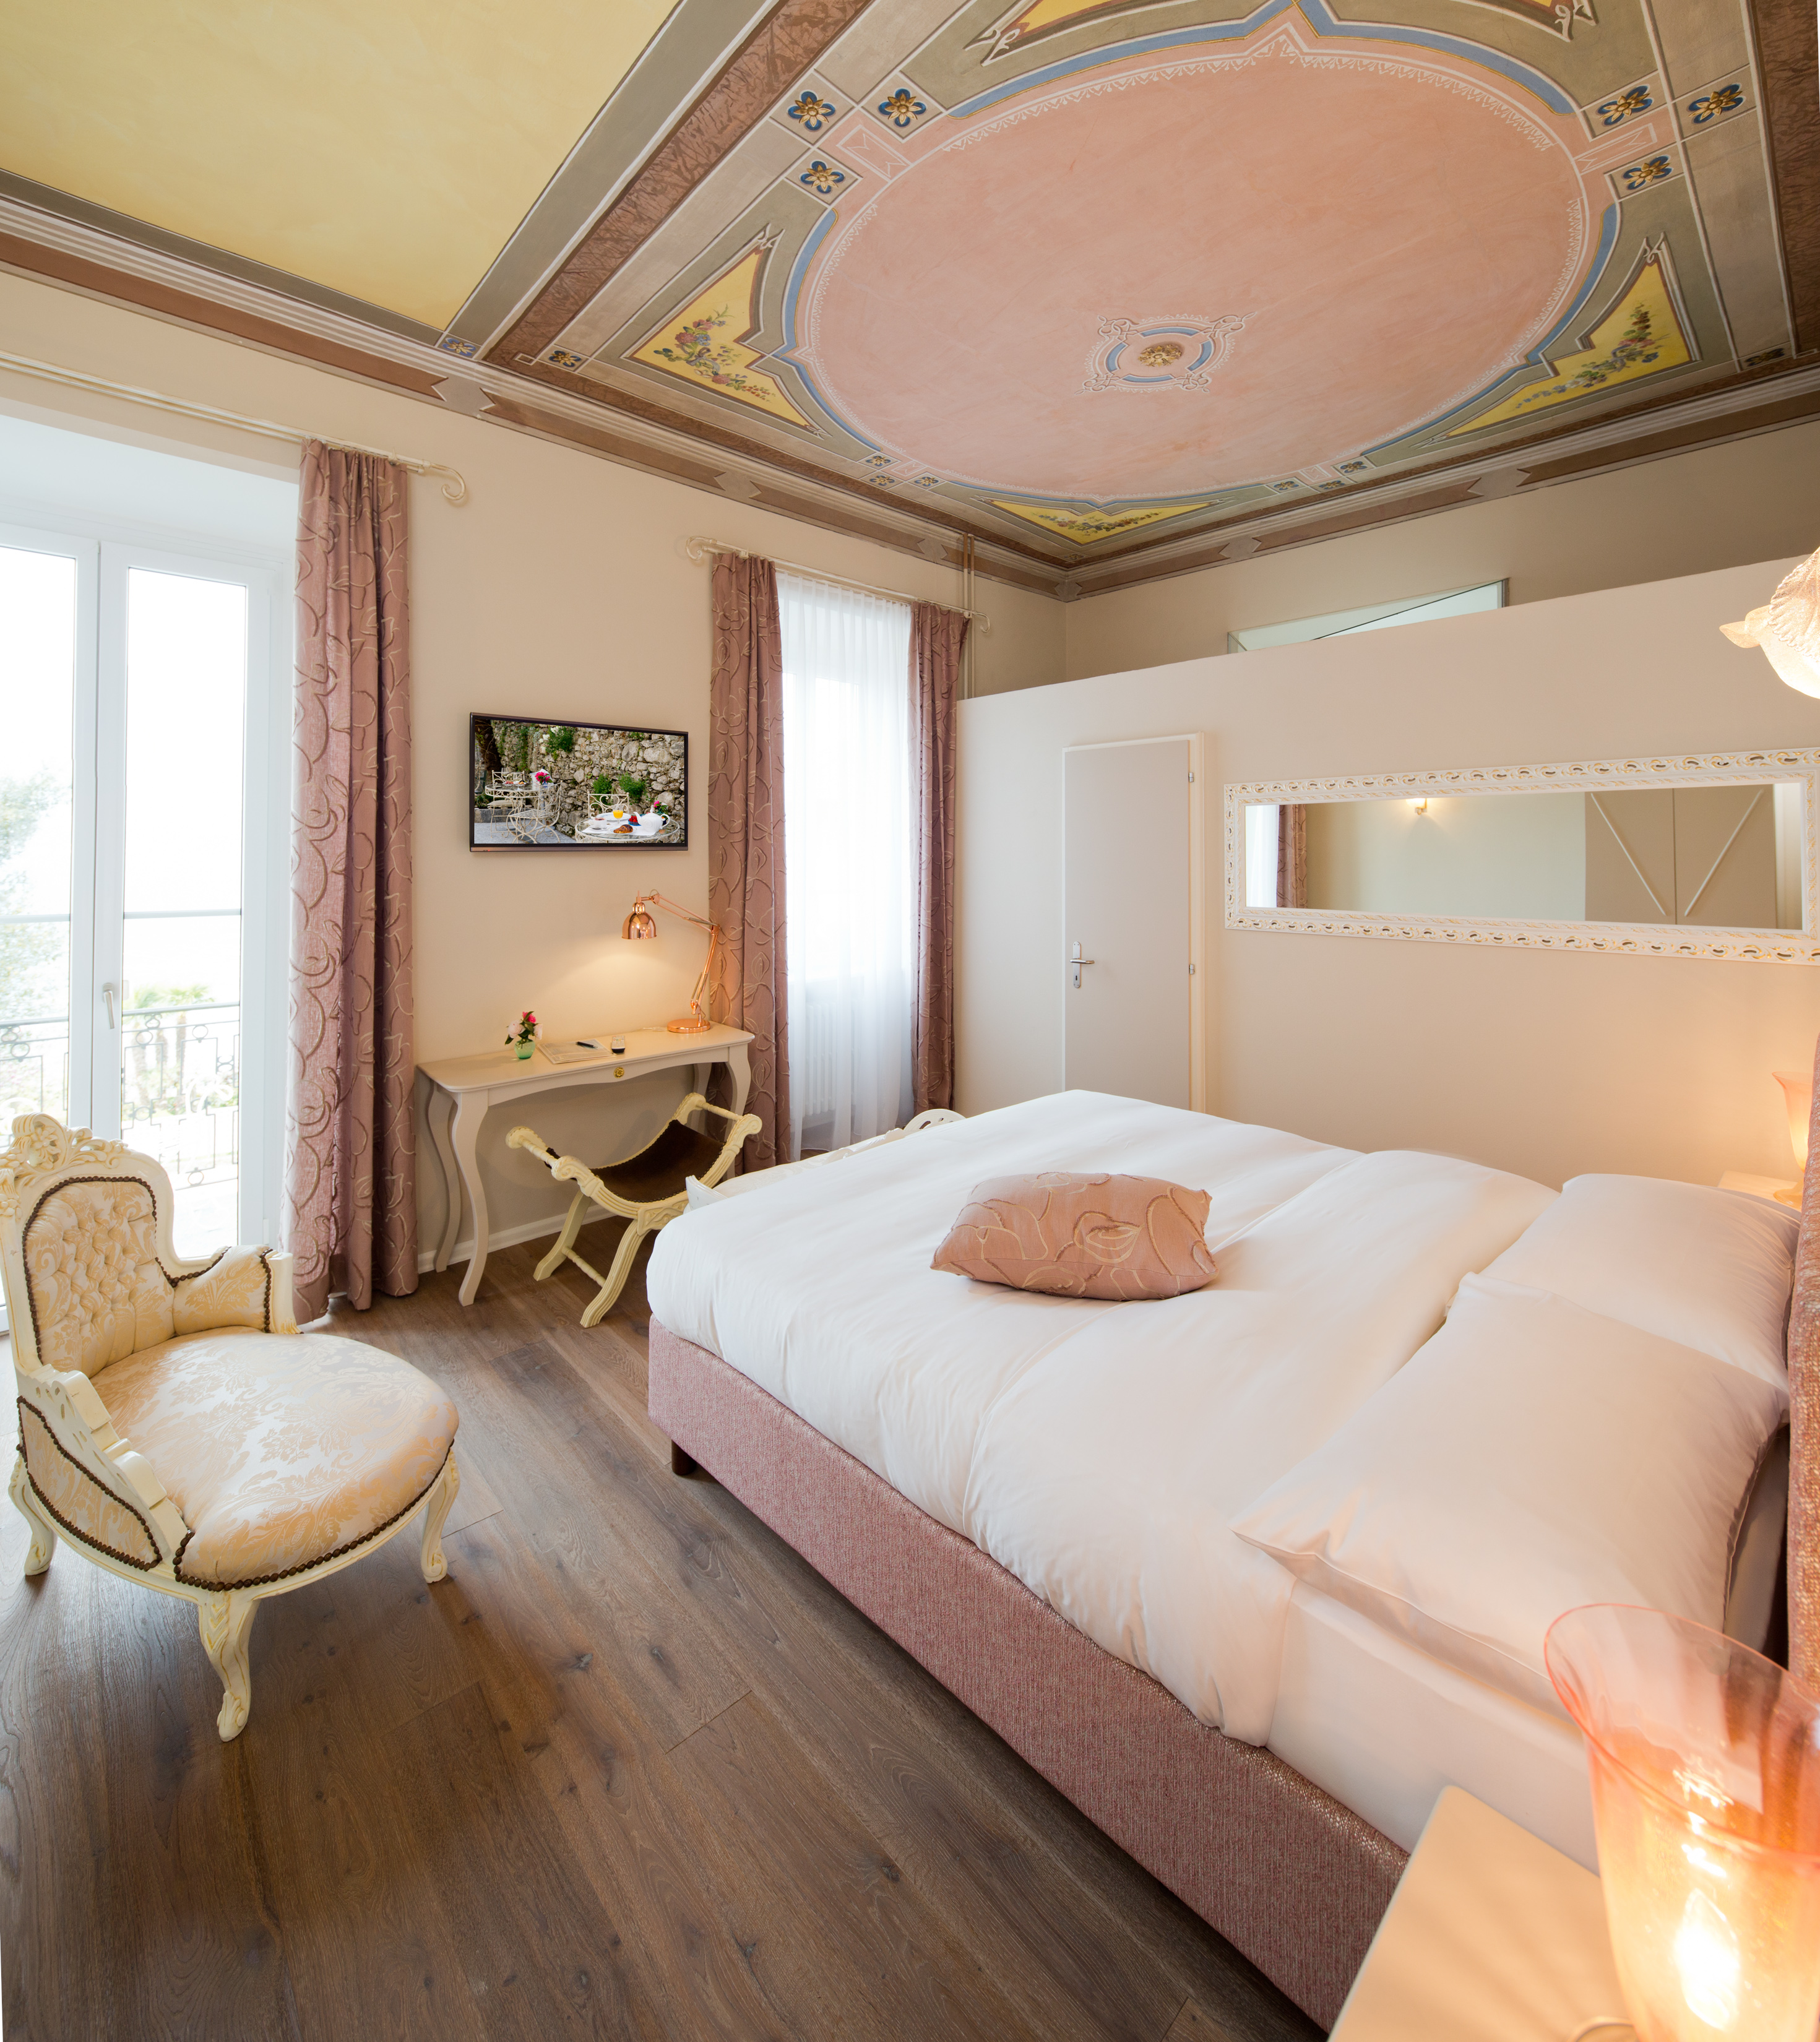 Albergo Villa Sarnia - rooms lookup 11